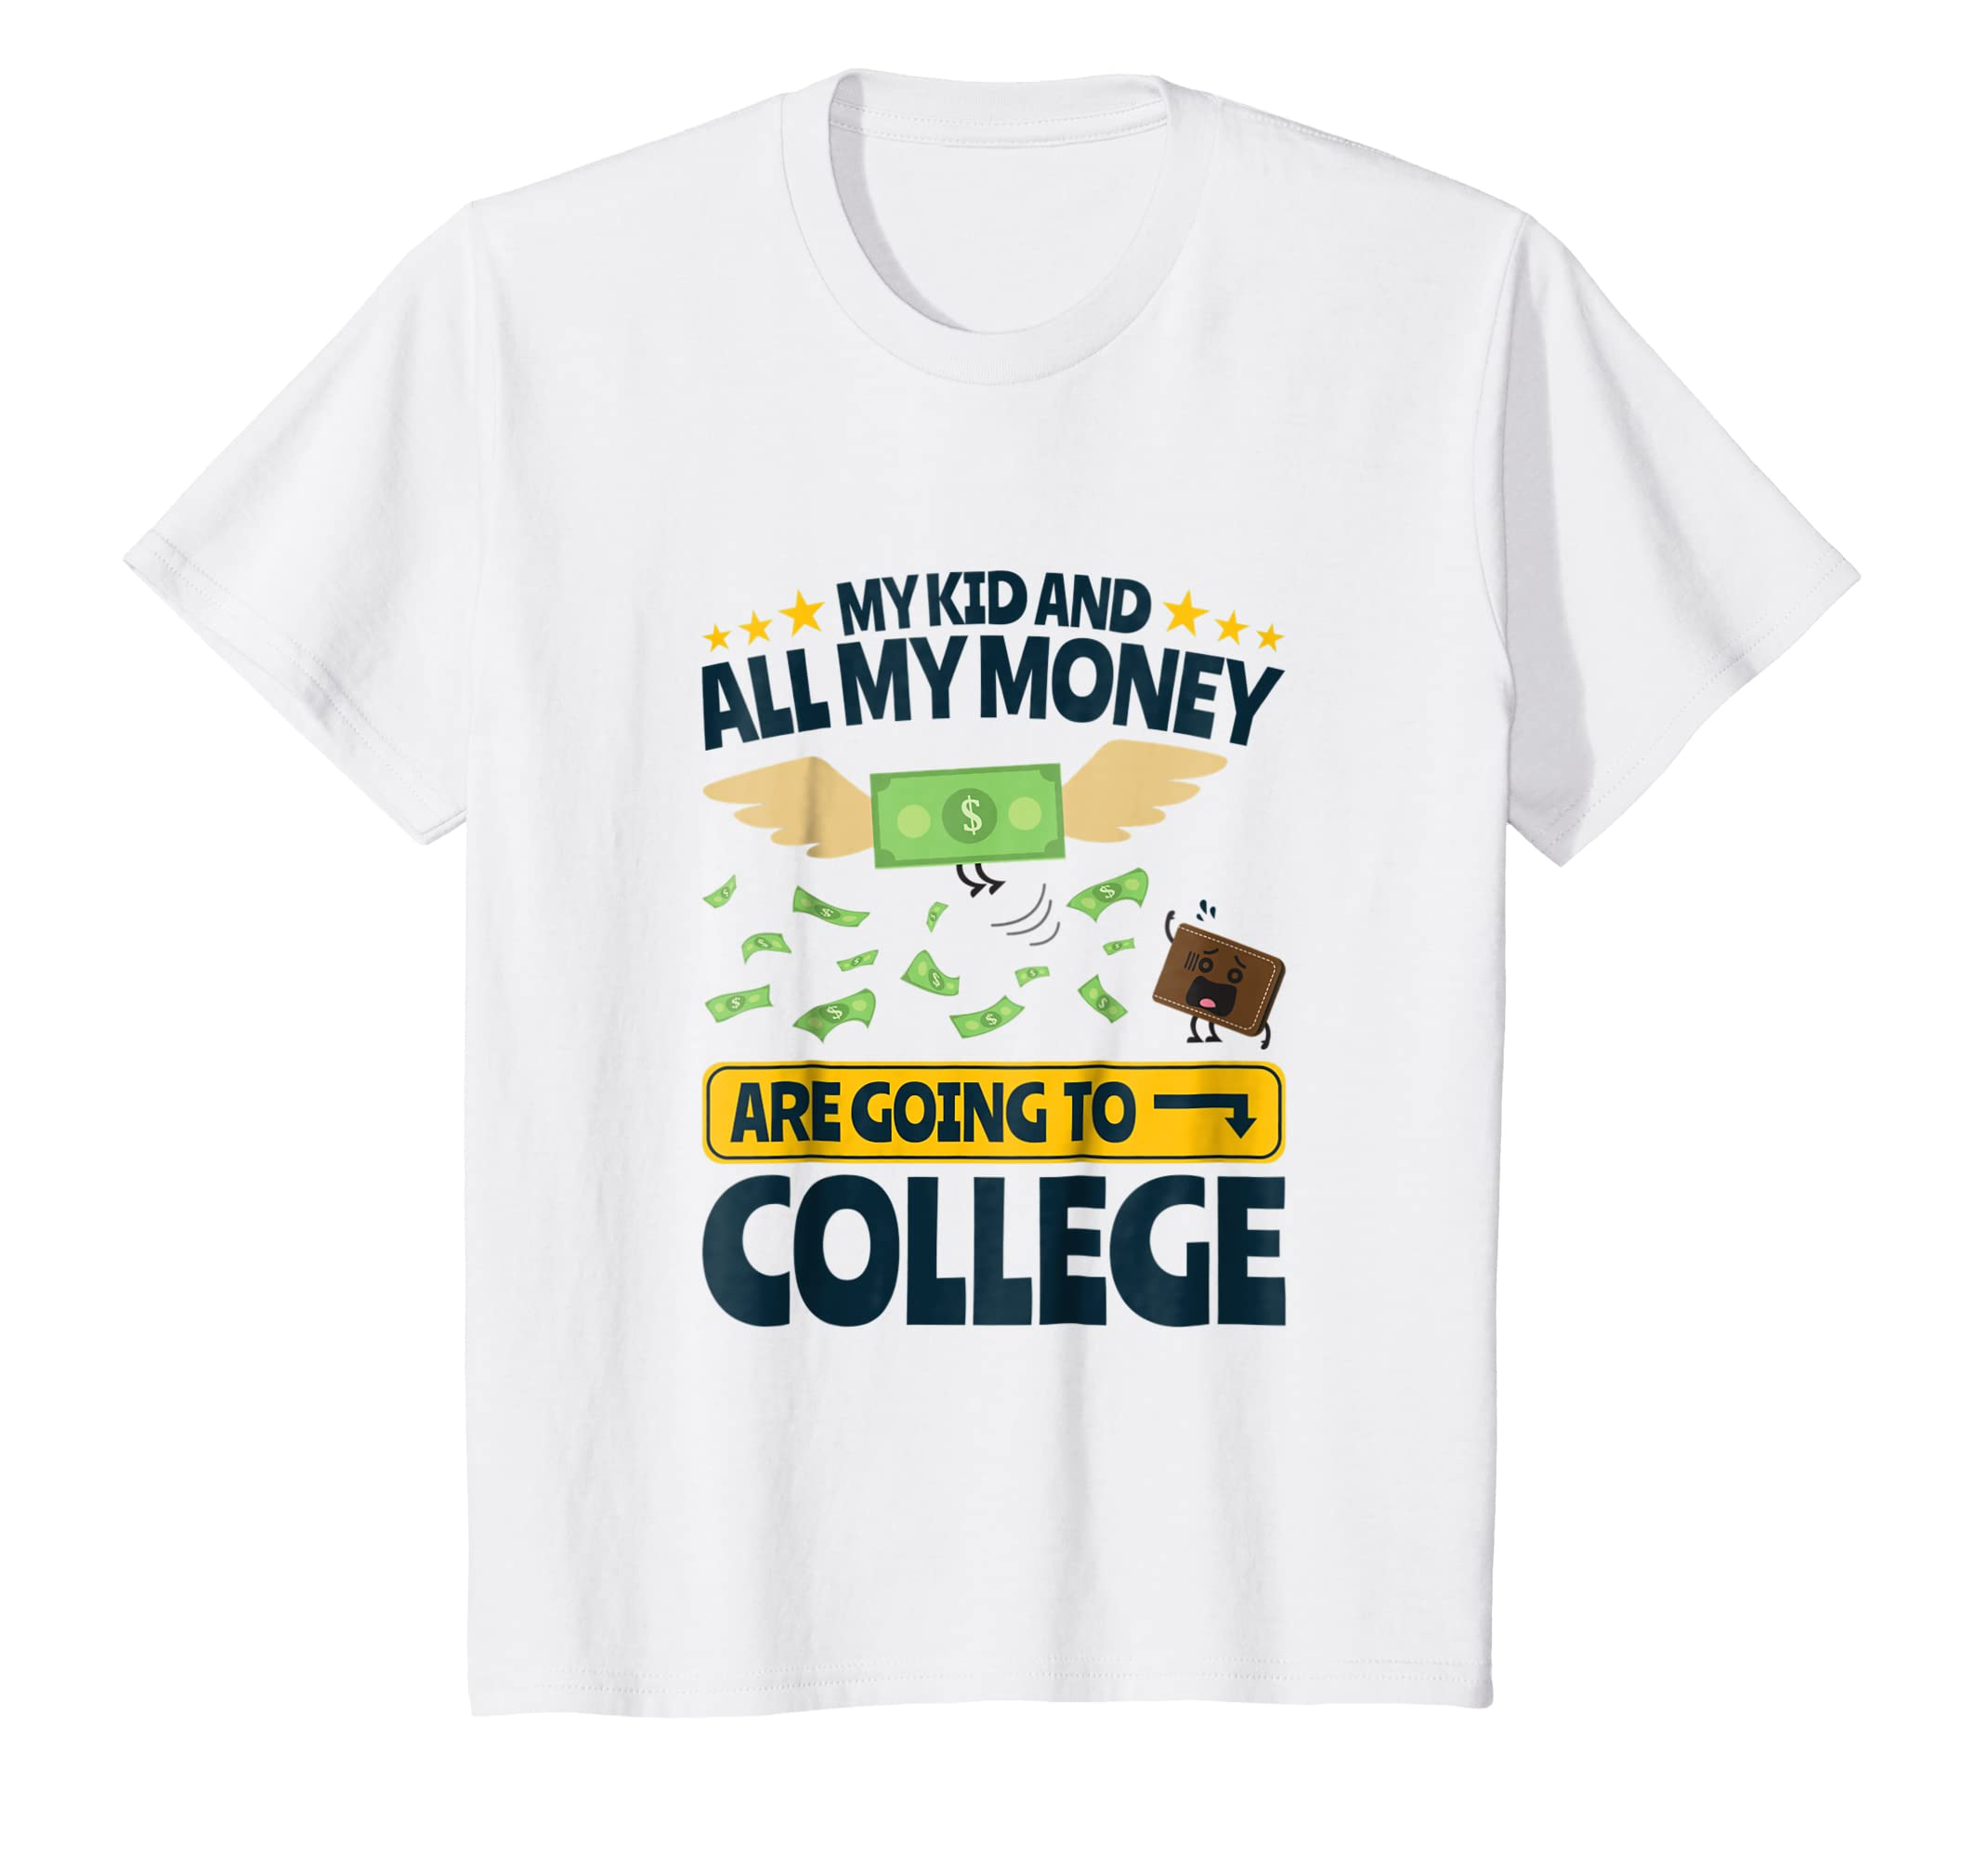 Amazoncom College Dad Shirt Funny Money Quote Clothing .